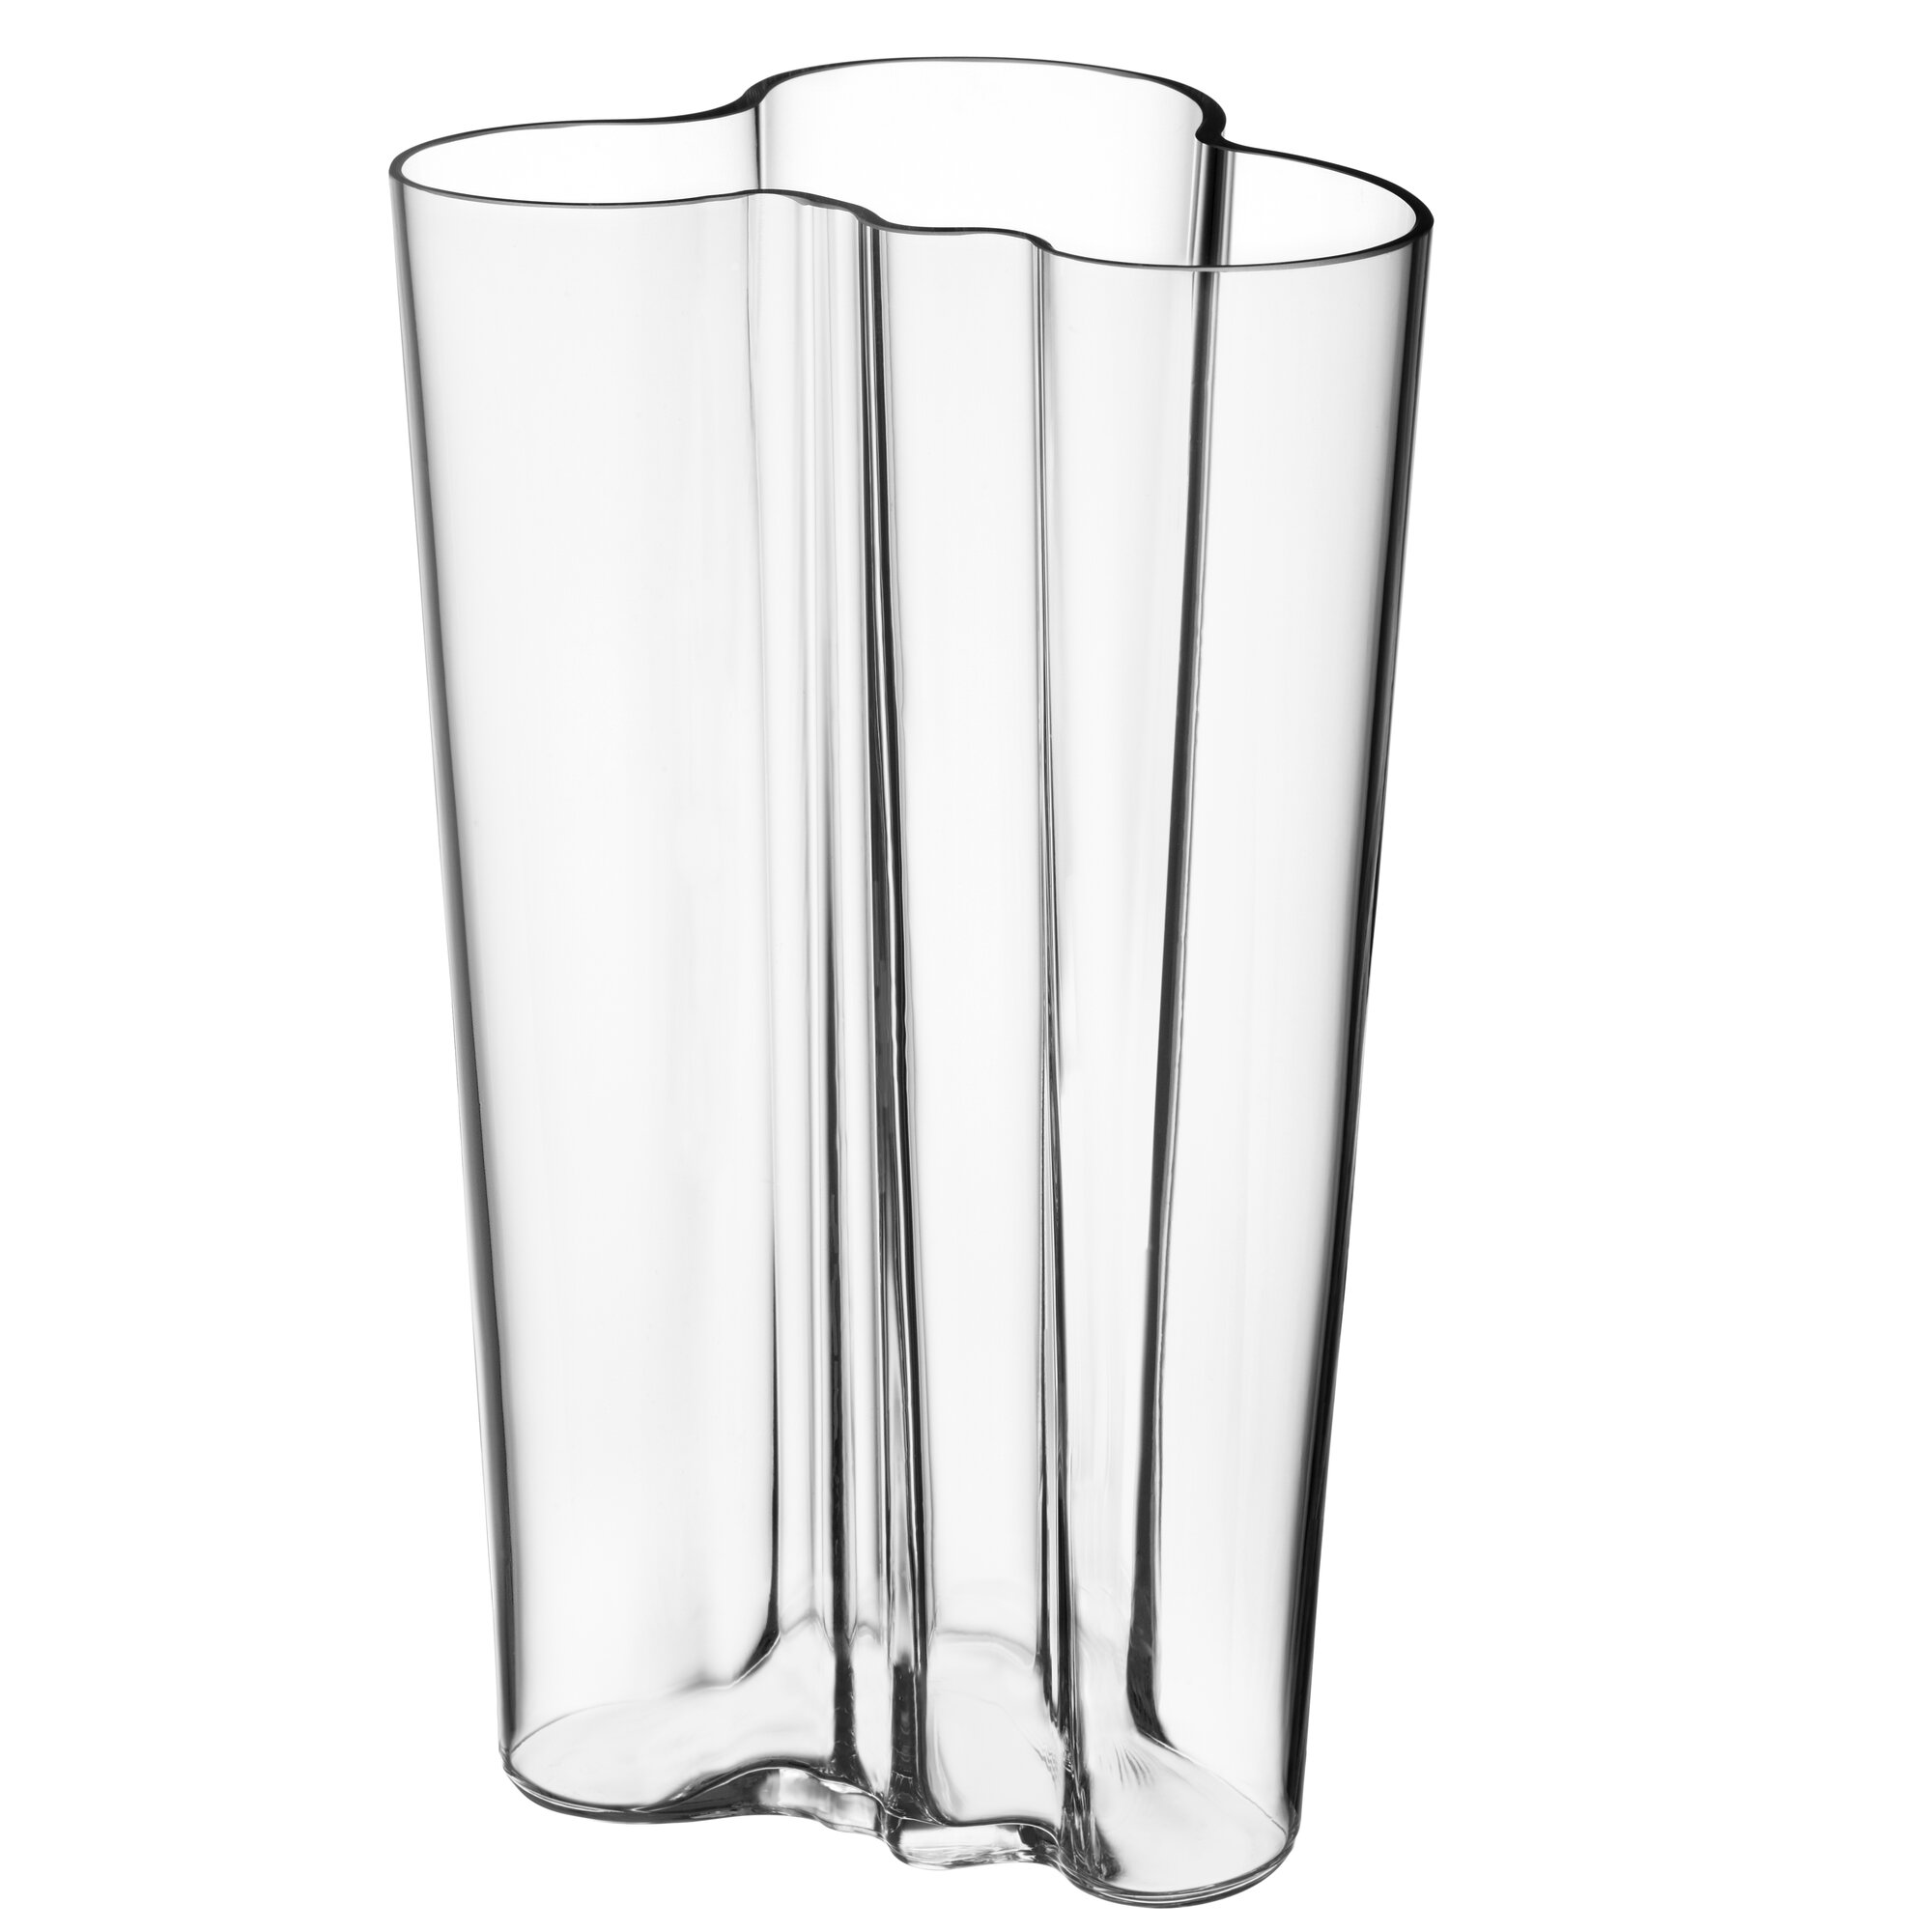 iittala alvar aalto finlandia table vase reviews wayfair. Black Bedroom Furniture Sets. Home Design Ideas